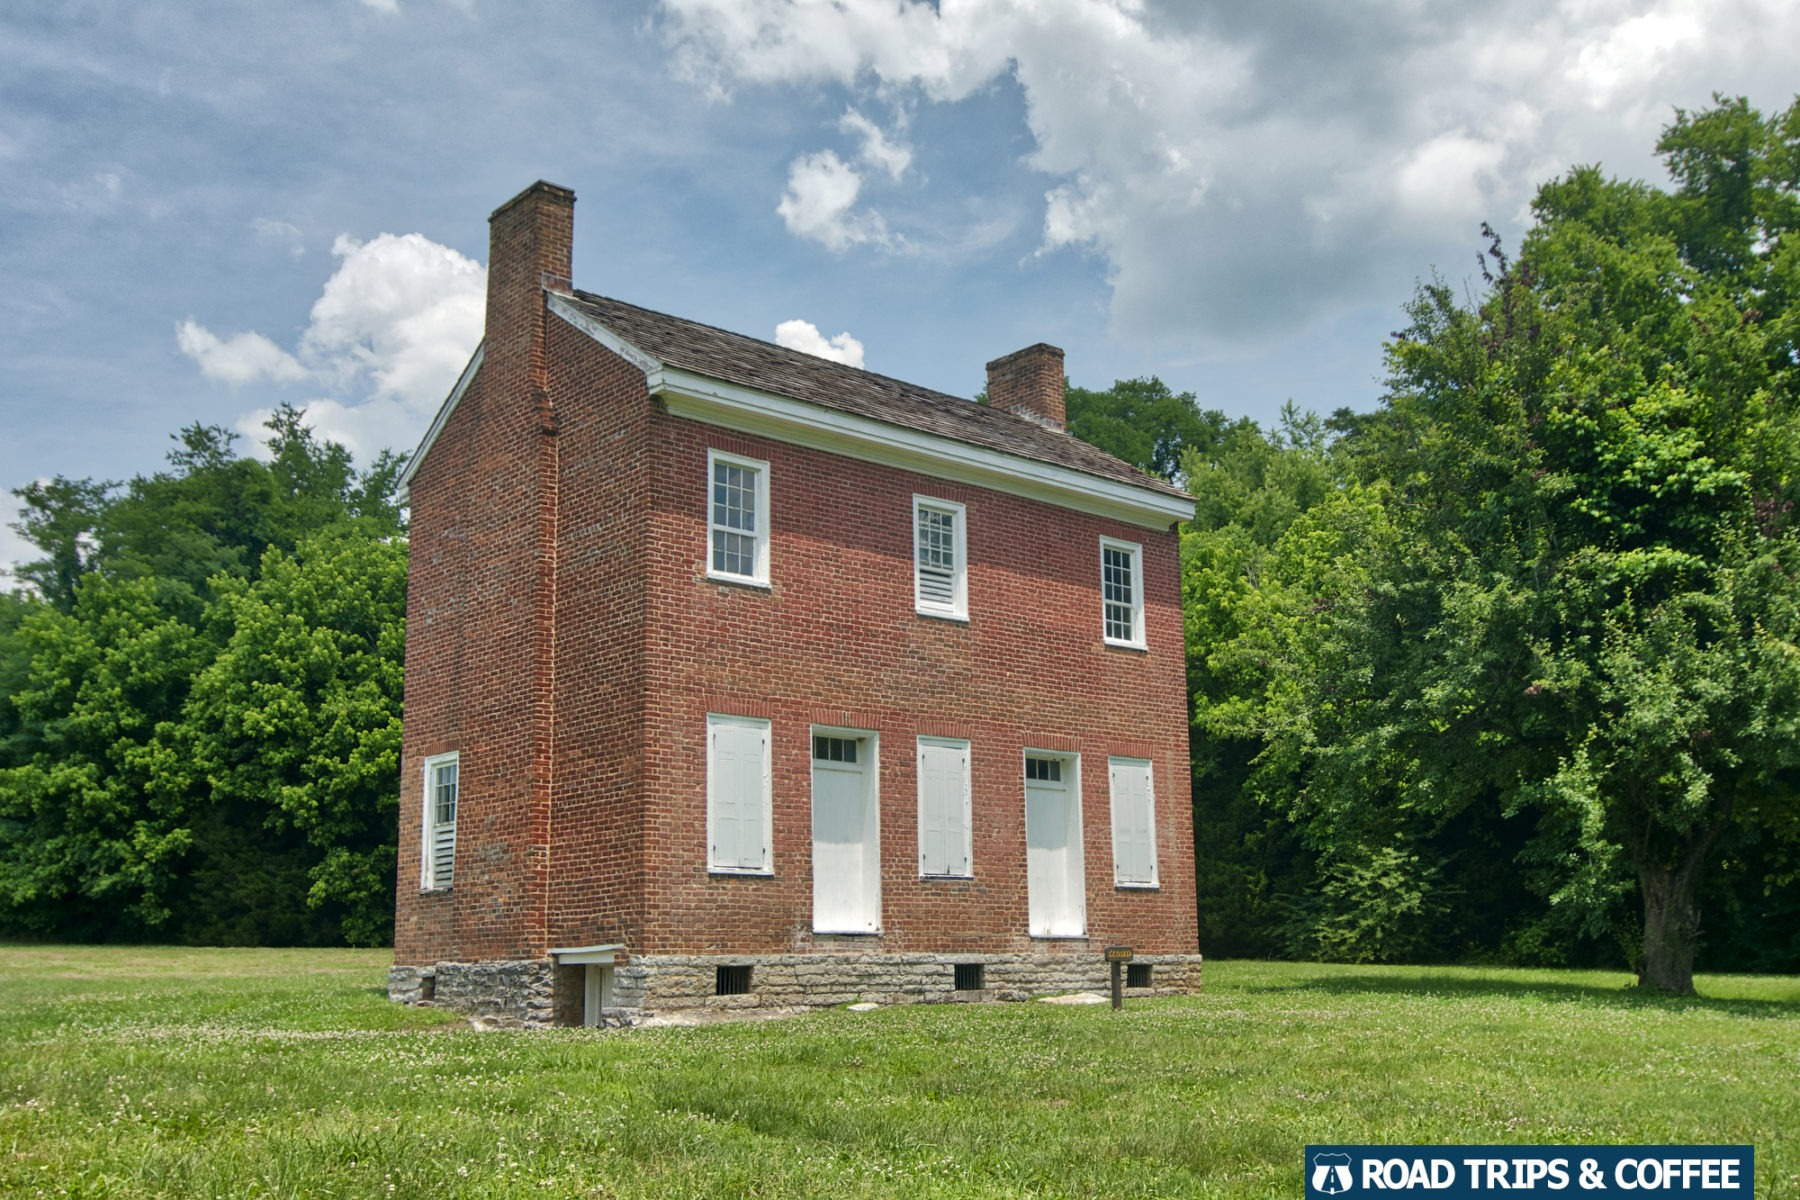 The two-story brick Gorden House Historic Site on the Natchez Trace Parkway in Tennessee